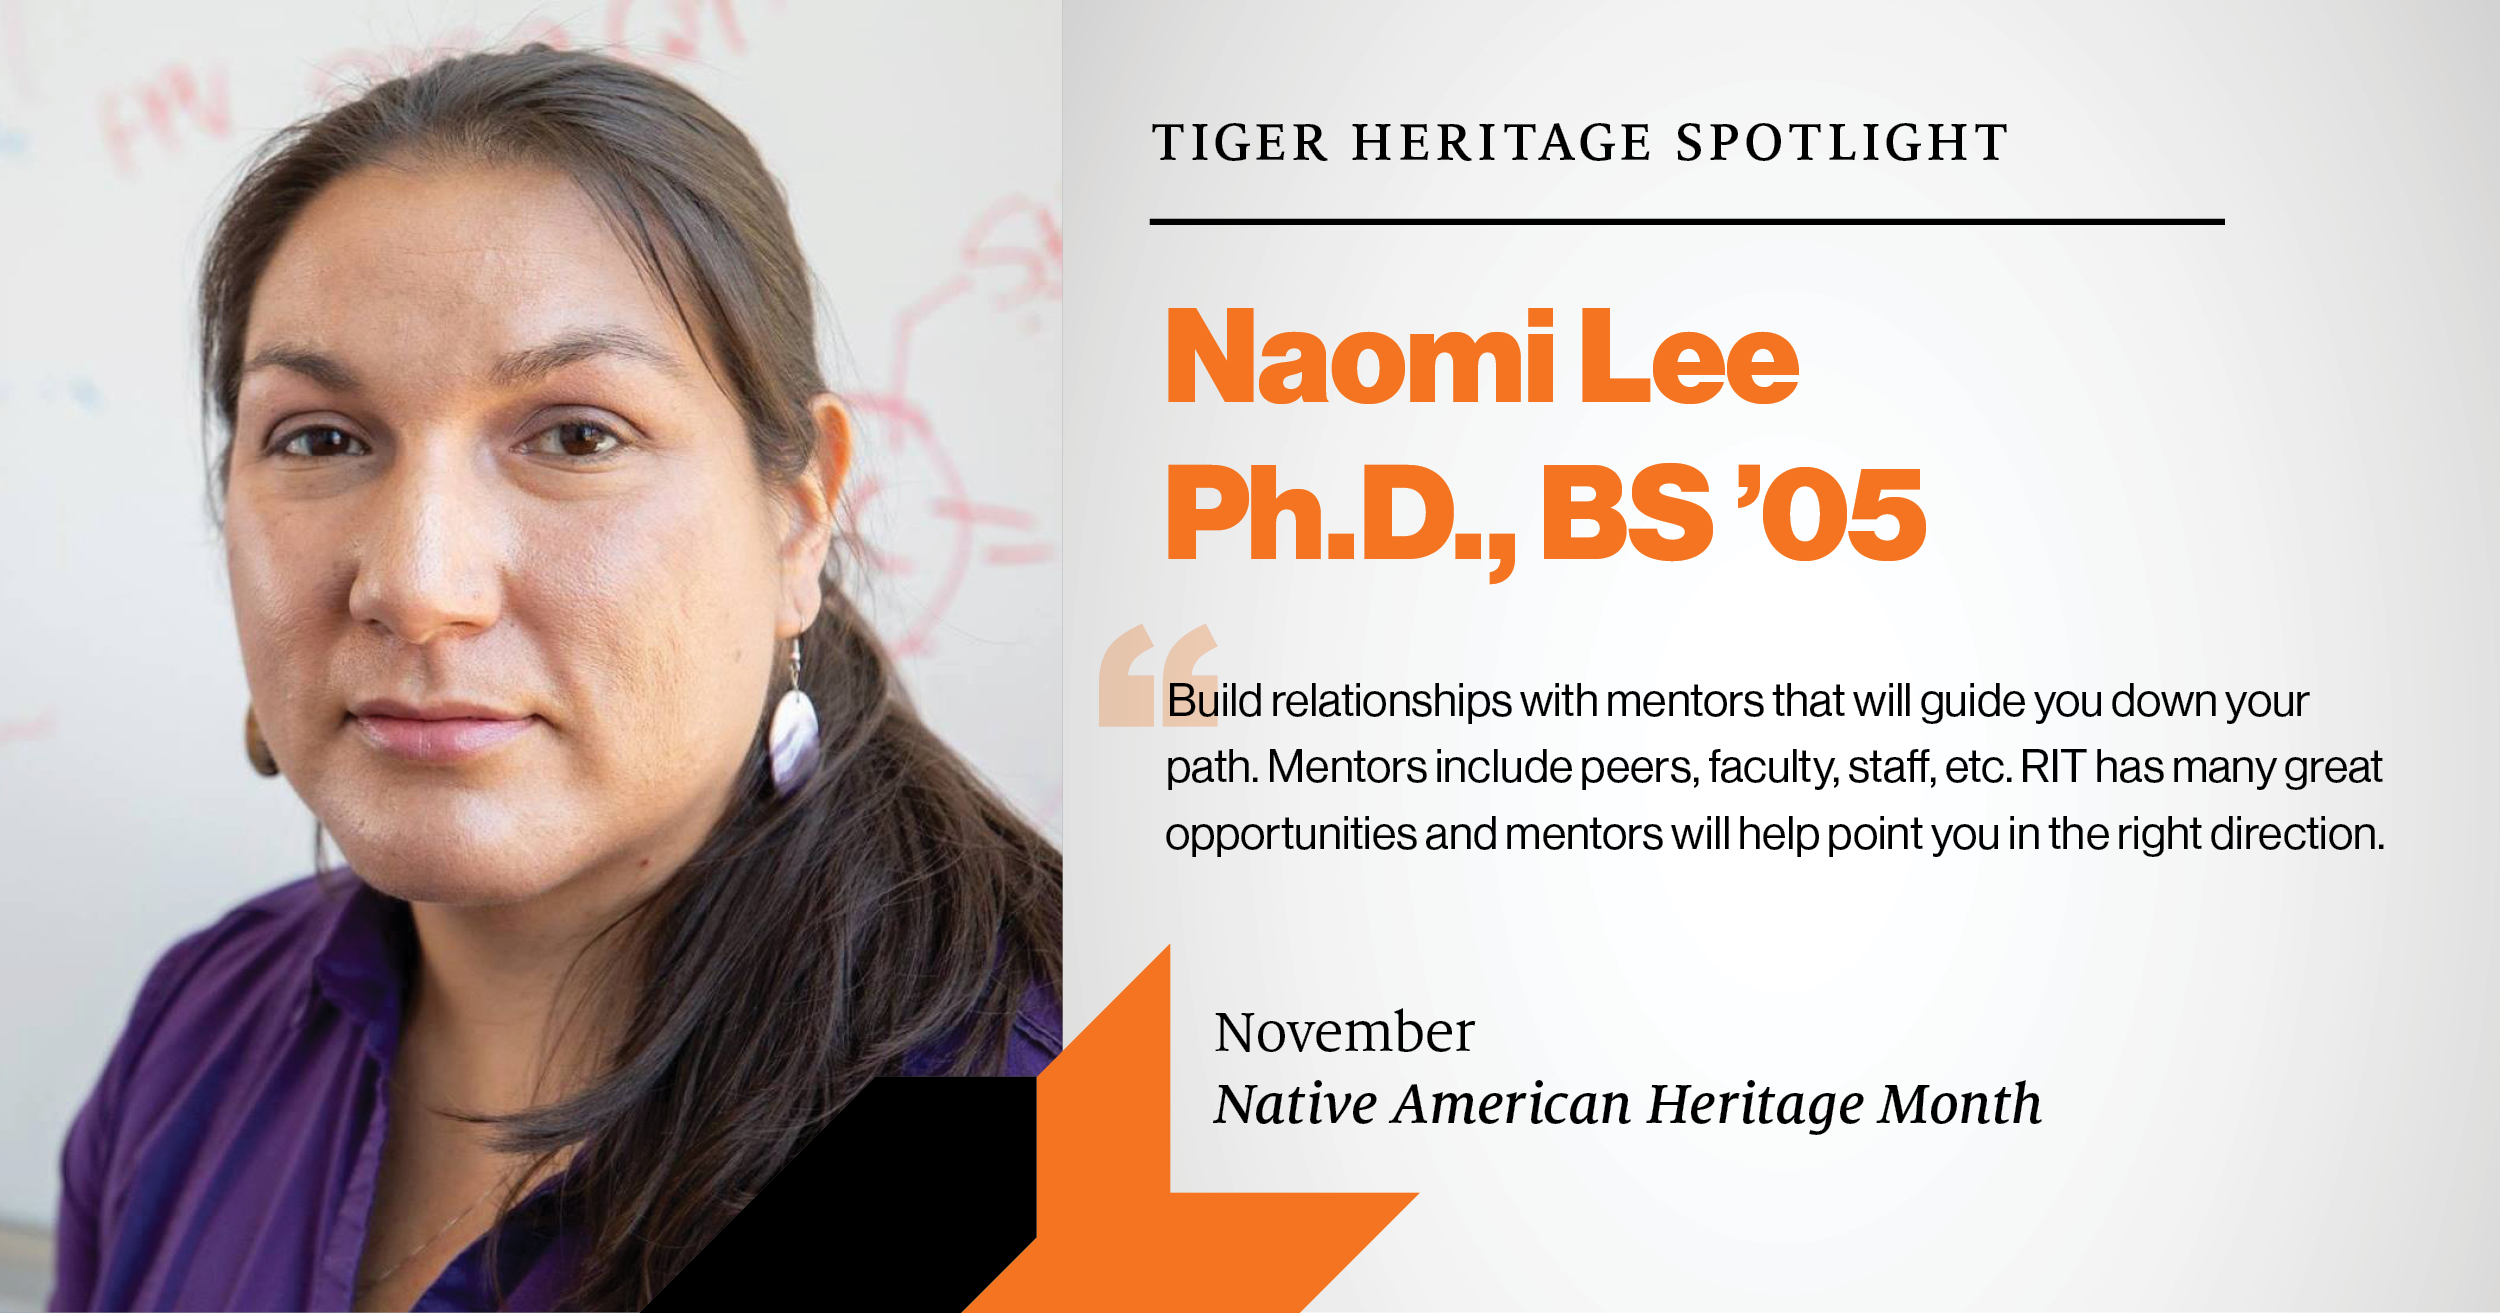 Tiger Heritage Spotlight Naomi Lee, Ph.D. BS '05 Build relationships with mentors that will guide you down your path, Mentors include peers, faculty, staff, etc. RIT has many great oppotunities and mentors that will help point you in the right direction